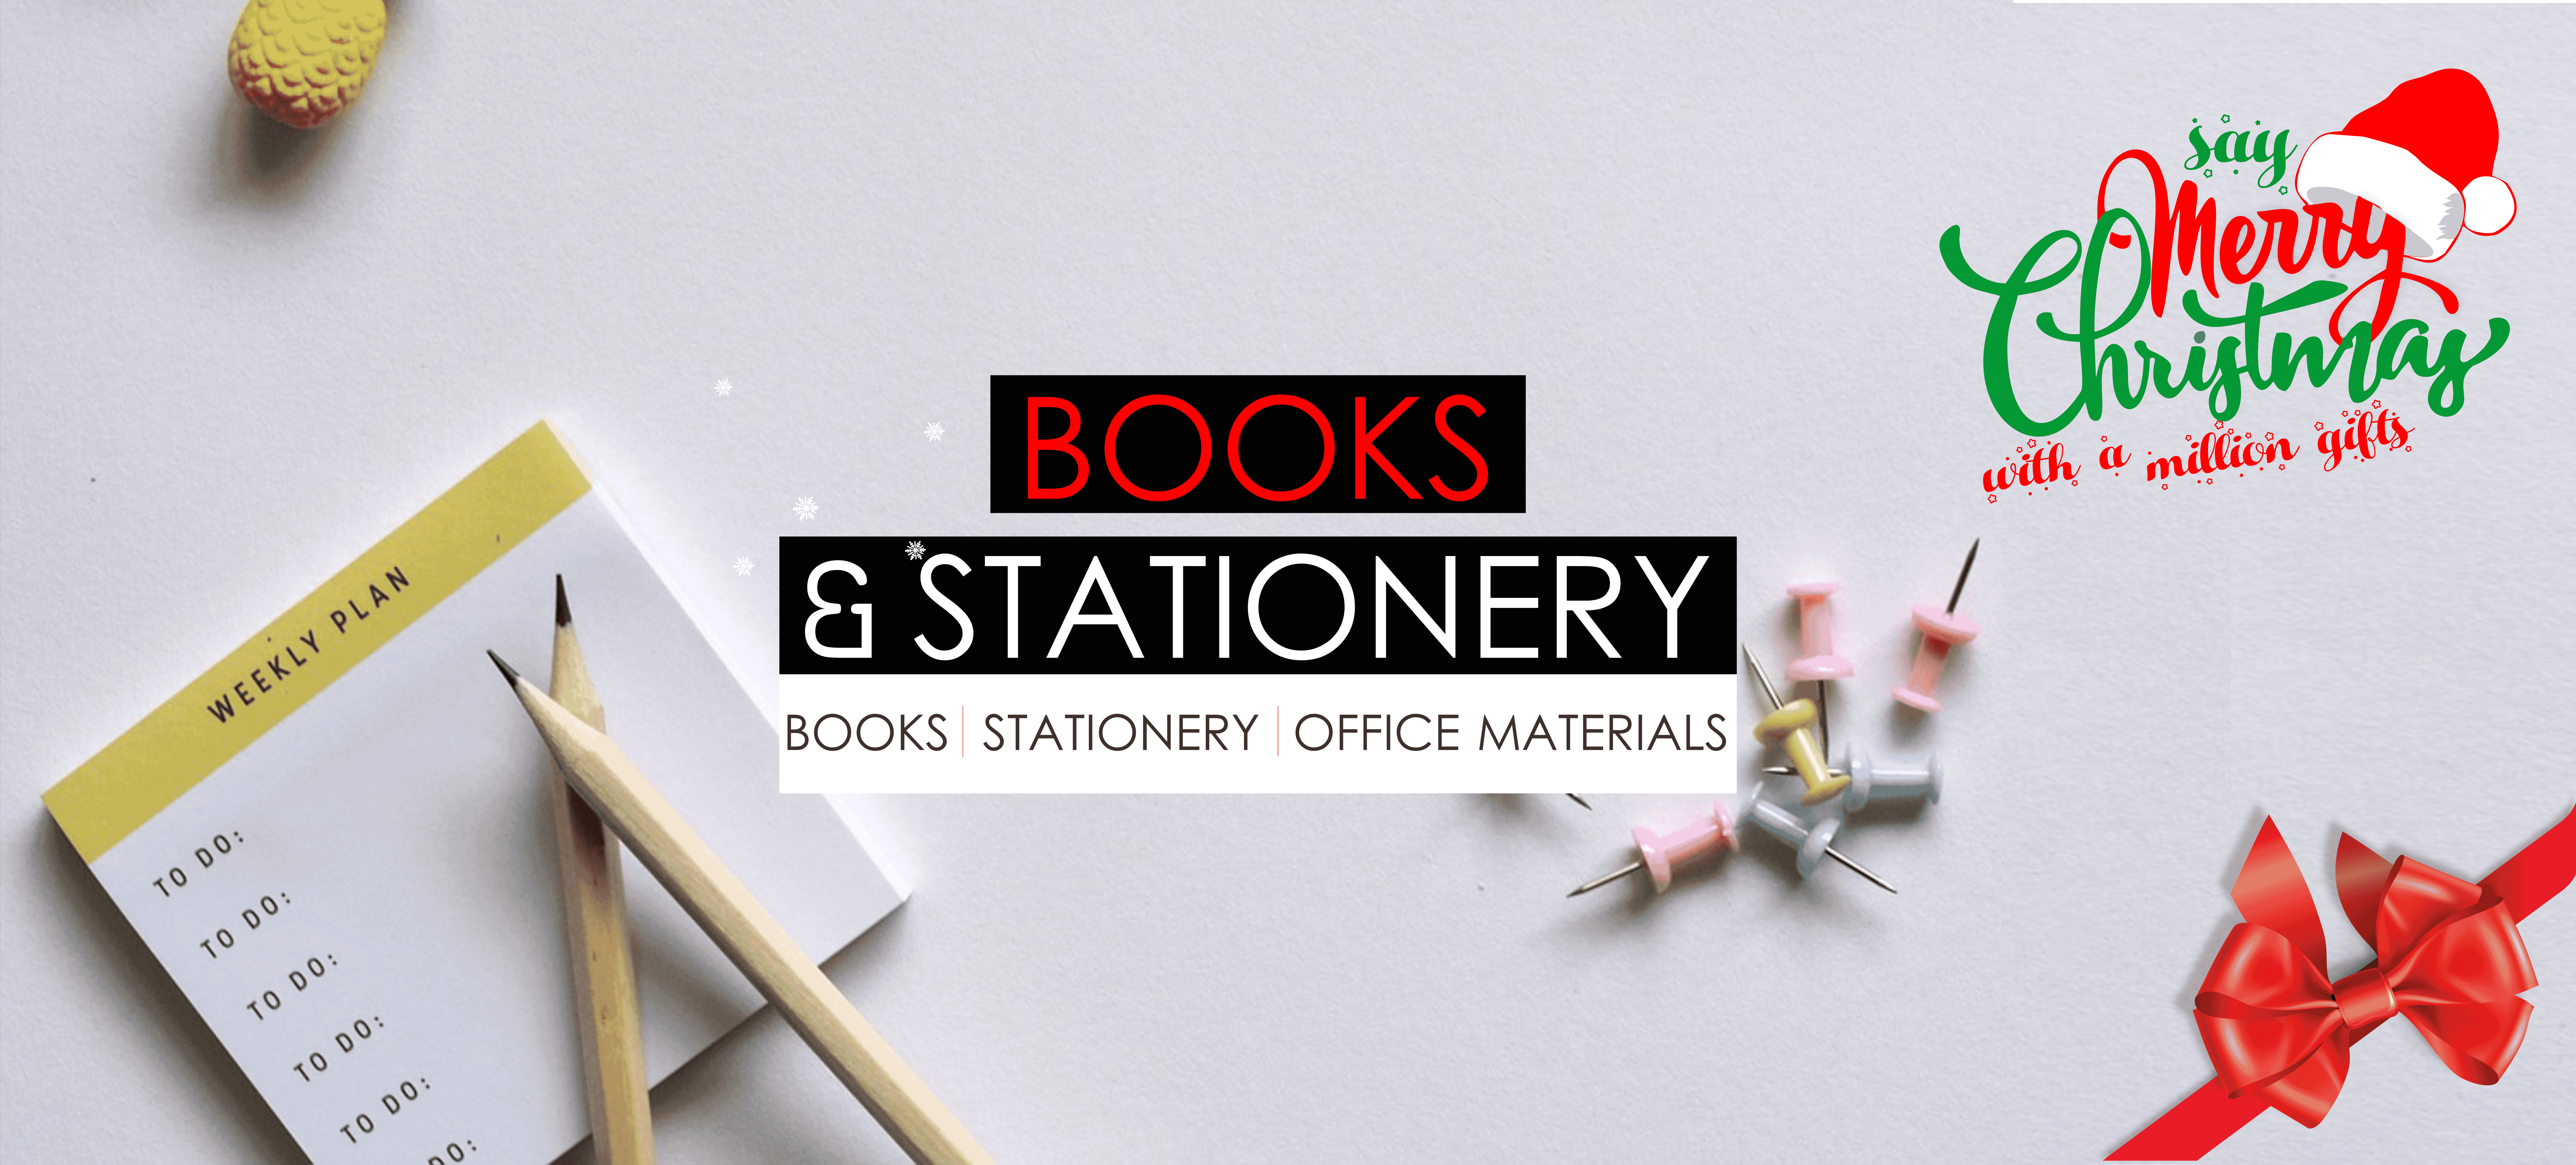 shop books and stationary